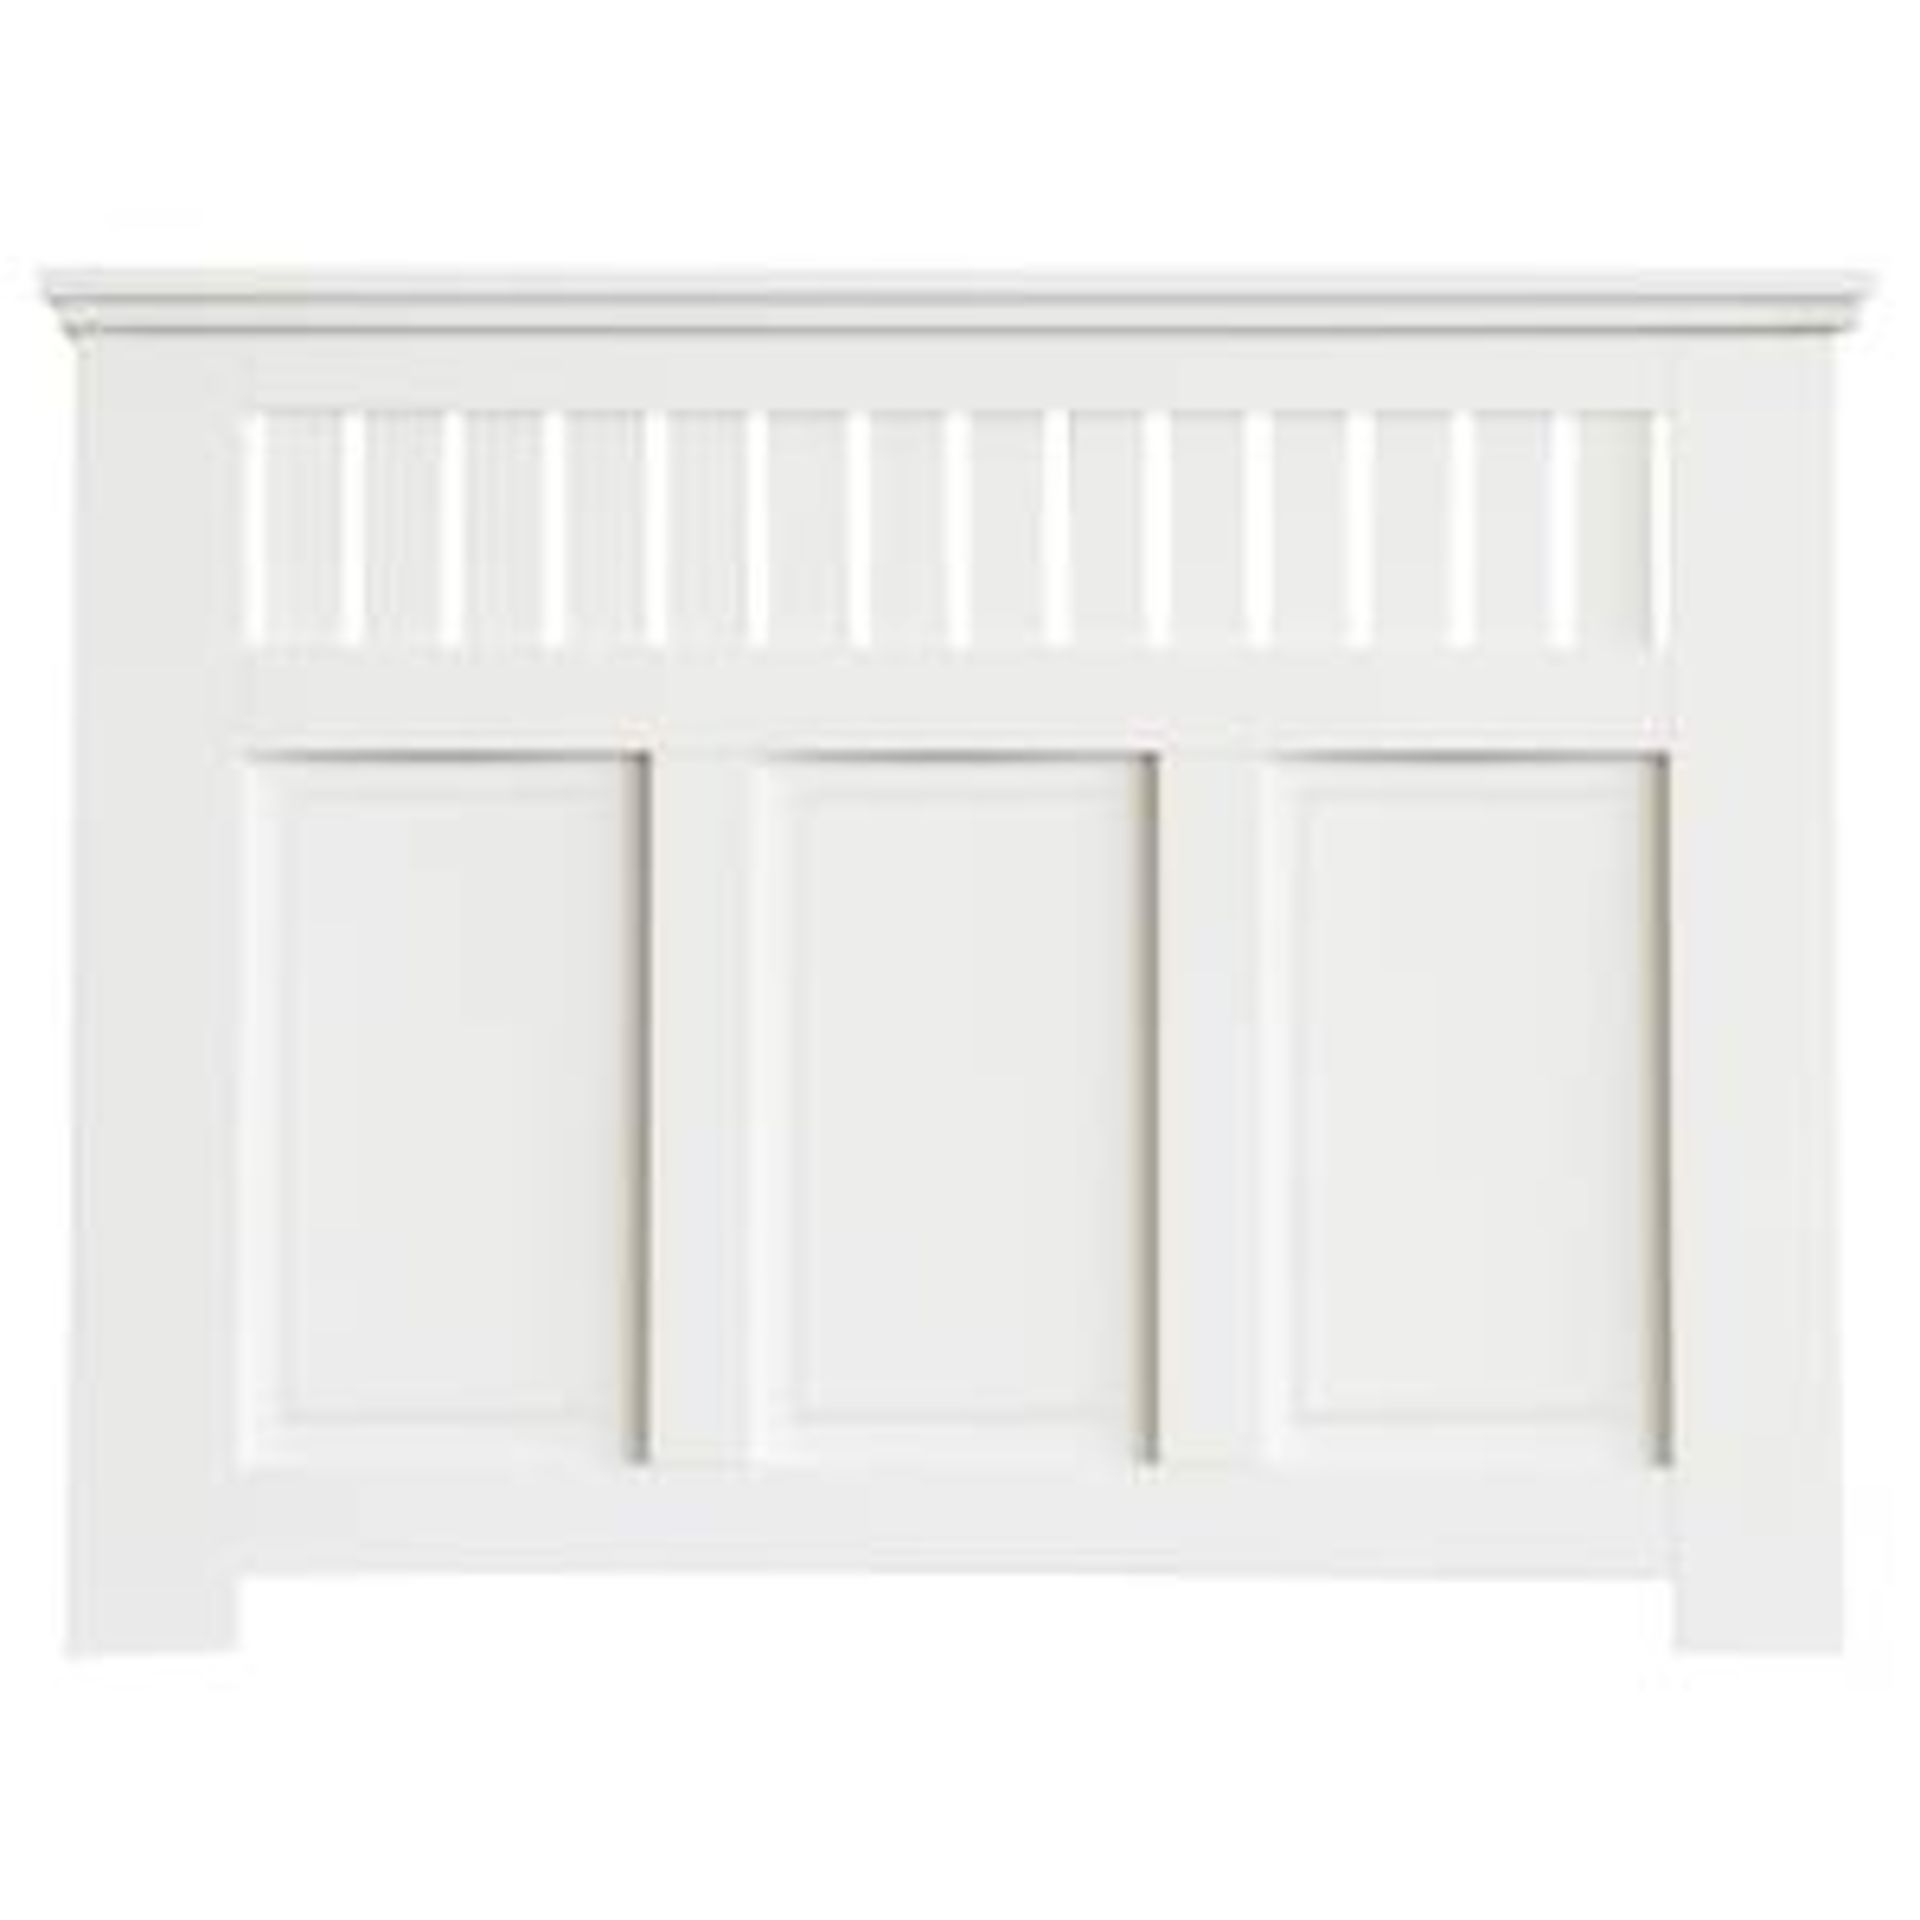 (3F) 1x Winther Browne Wilton Radiator Cabinet Smooth White Finish. - Image 2 of 4